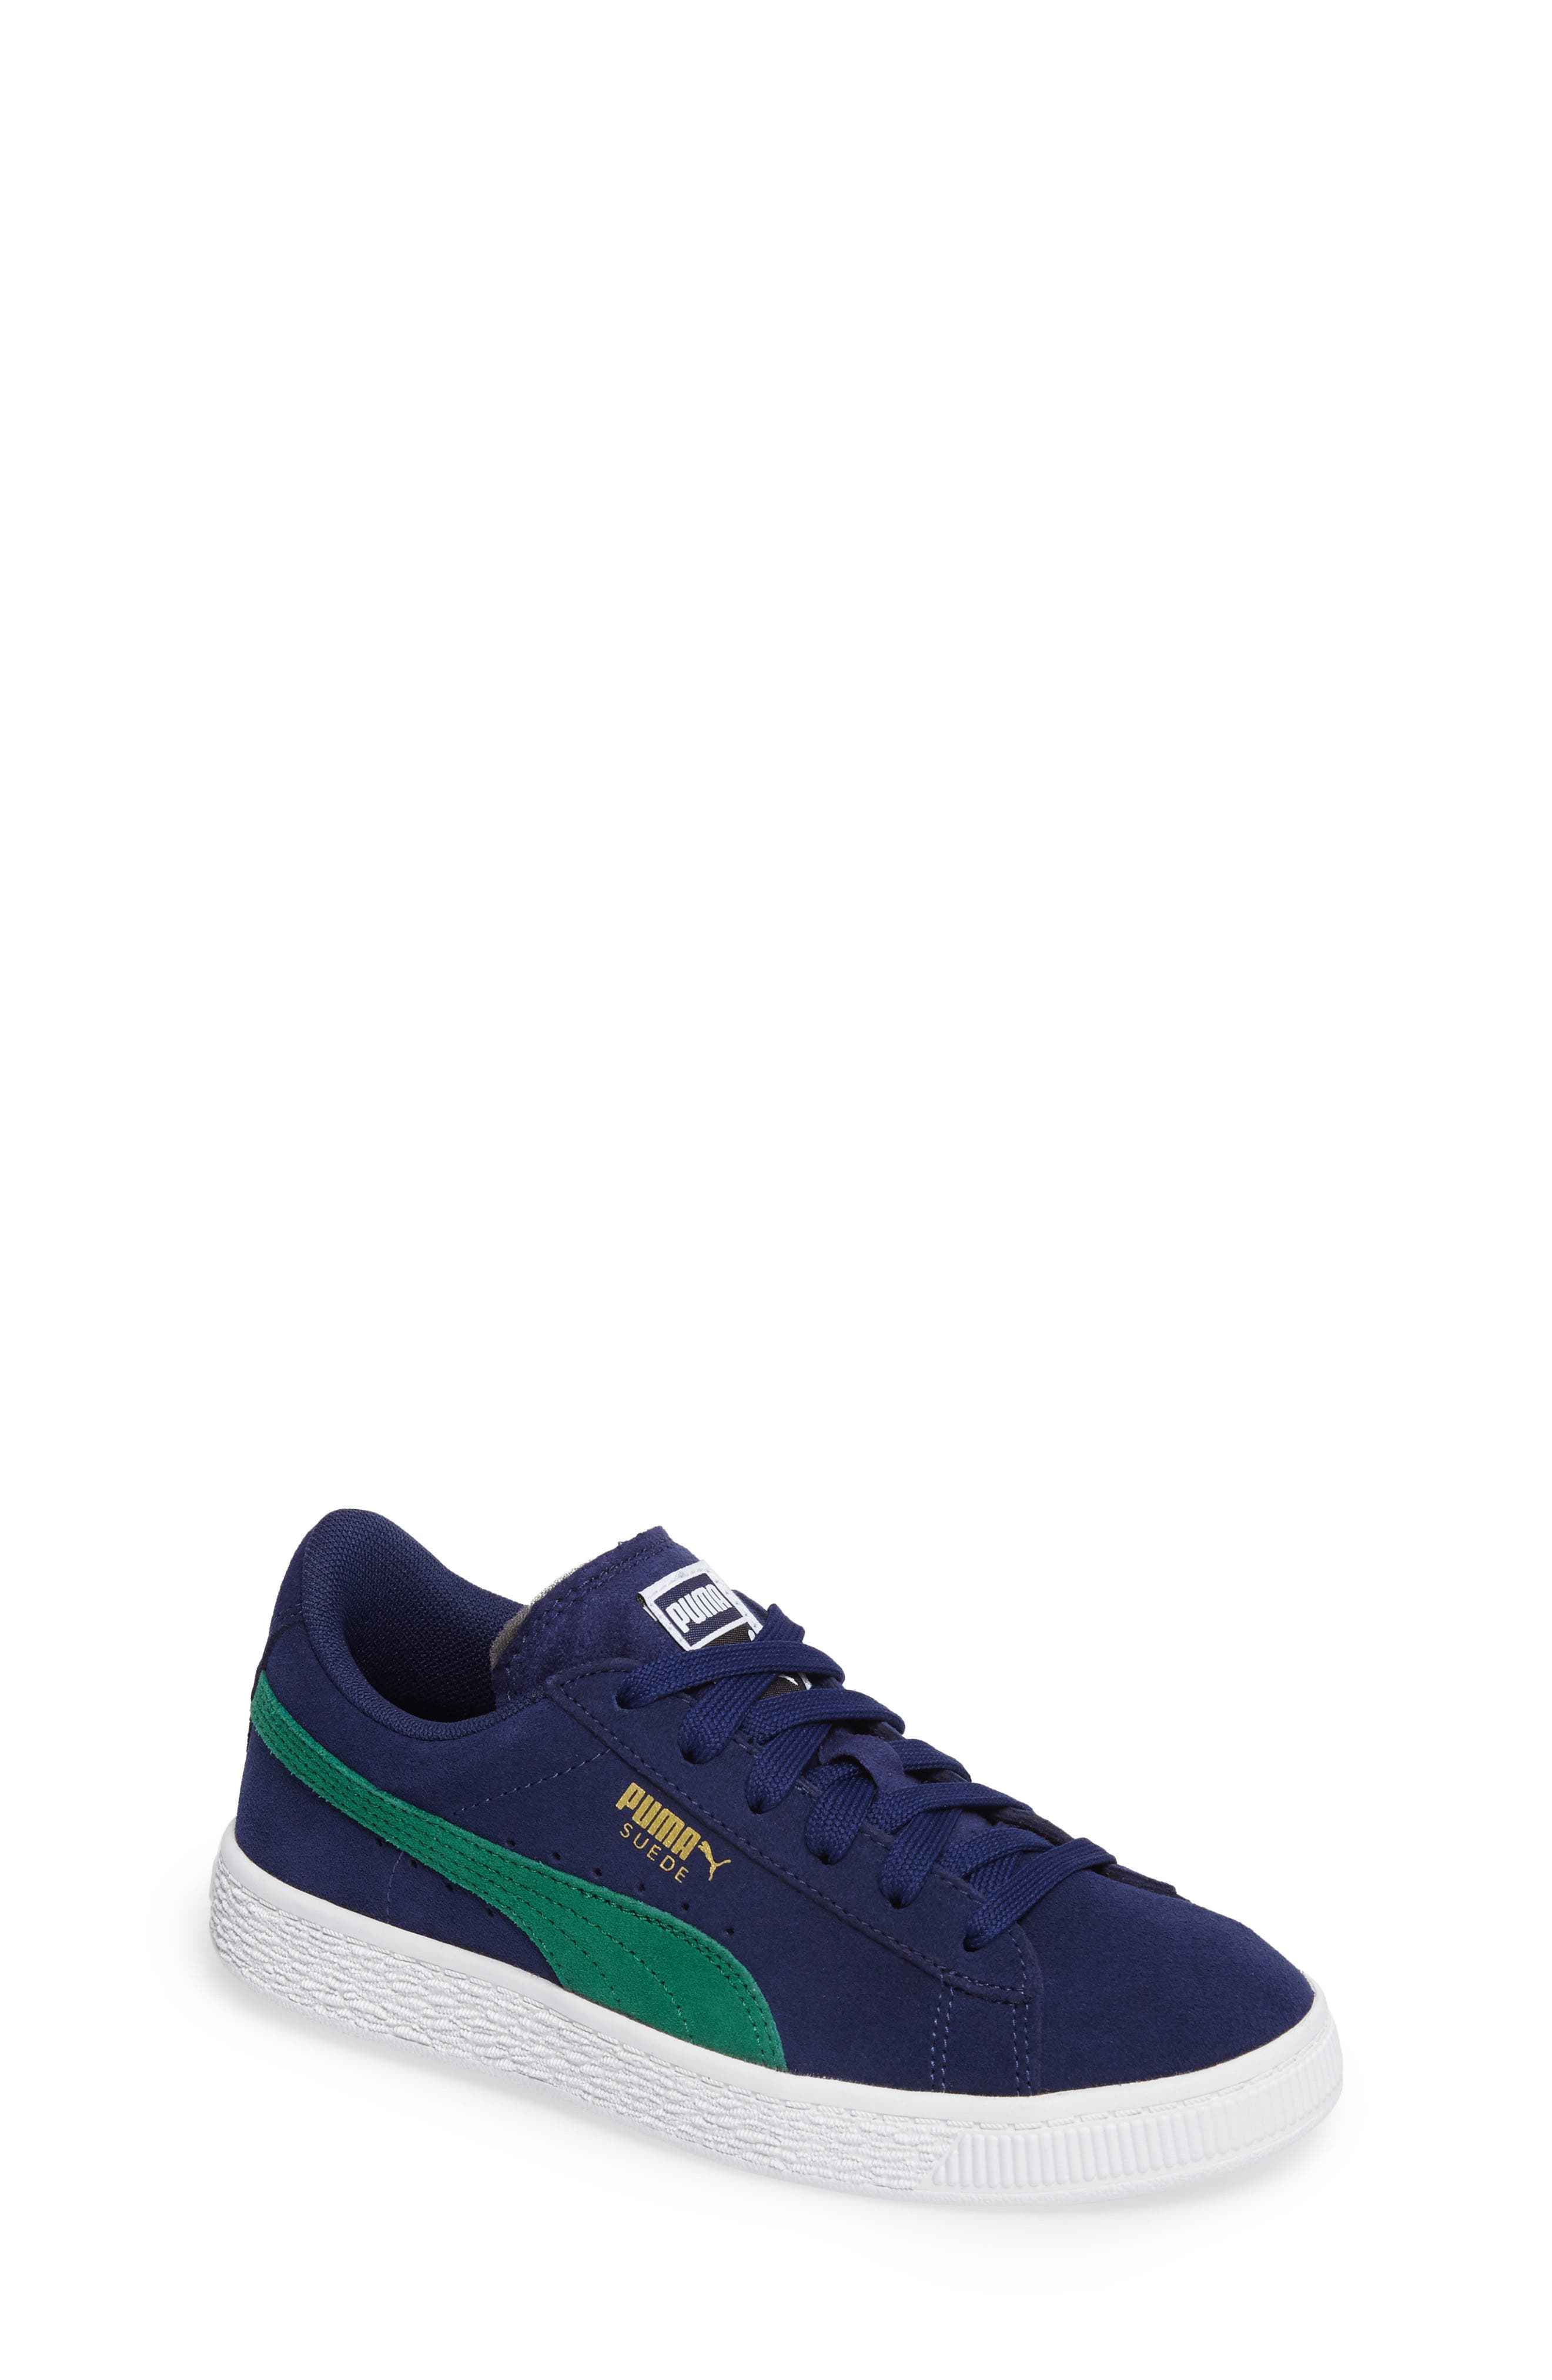 PUMA Suede Classic Sneaker (Toddler, Little Kid & Big Kid)